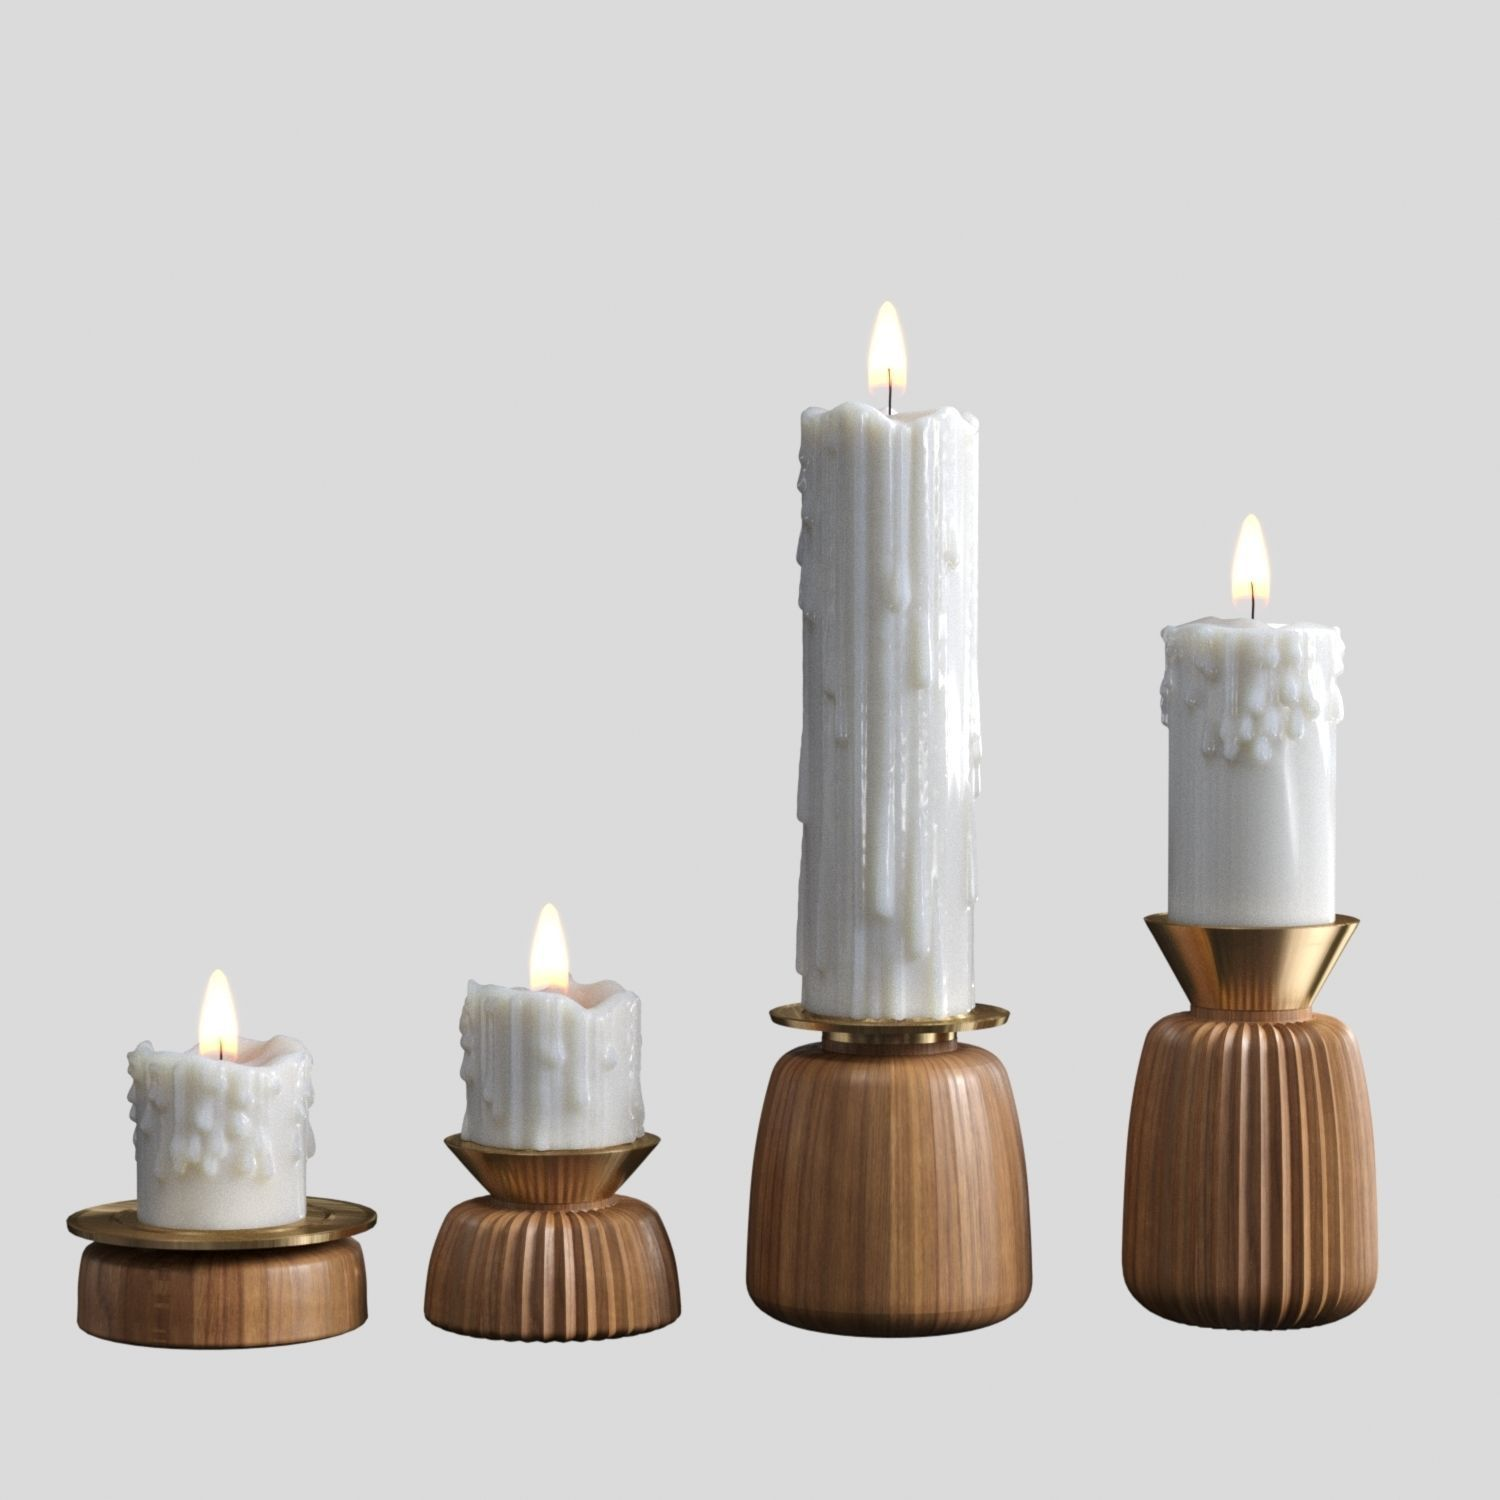 Melted candles set